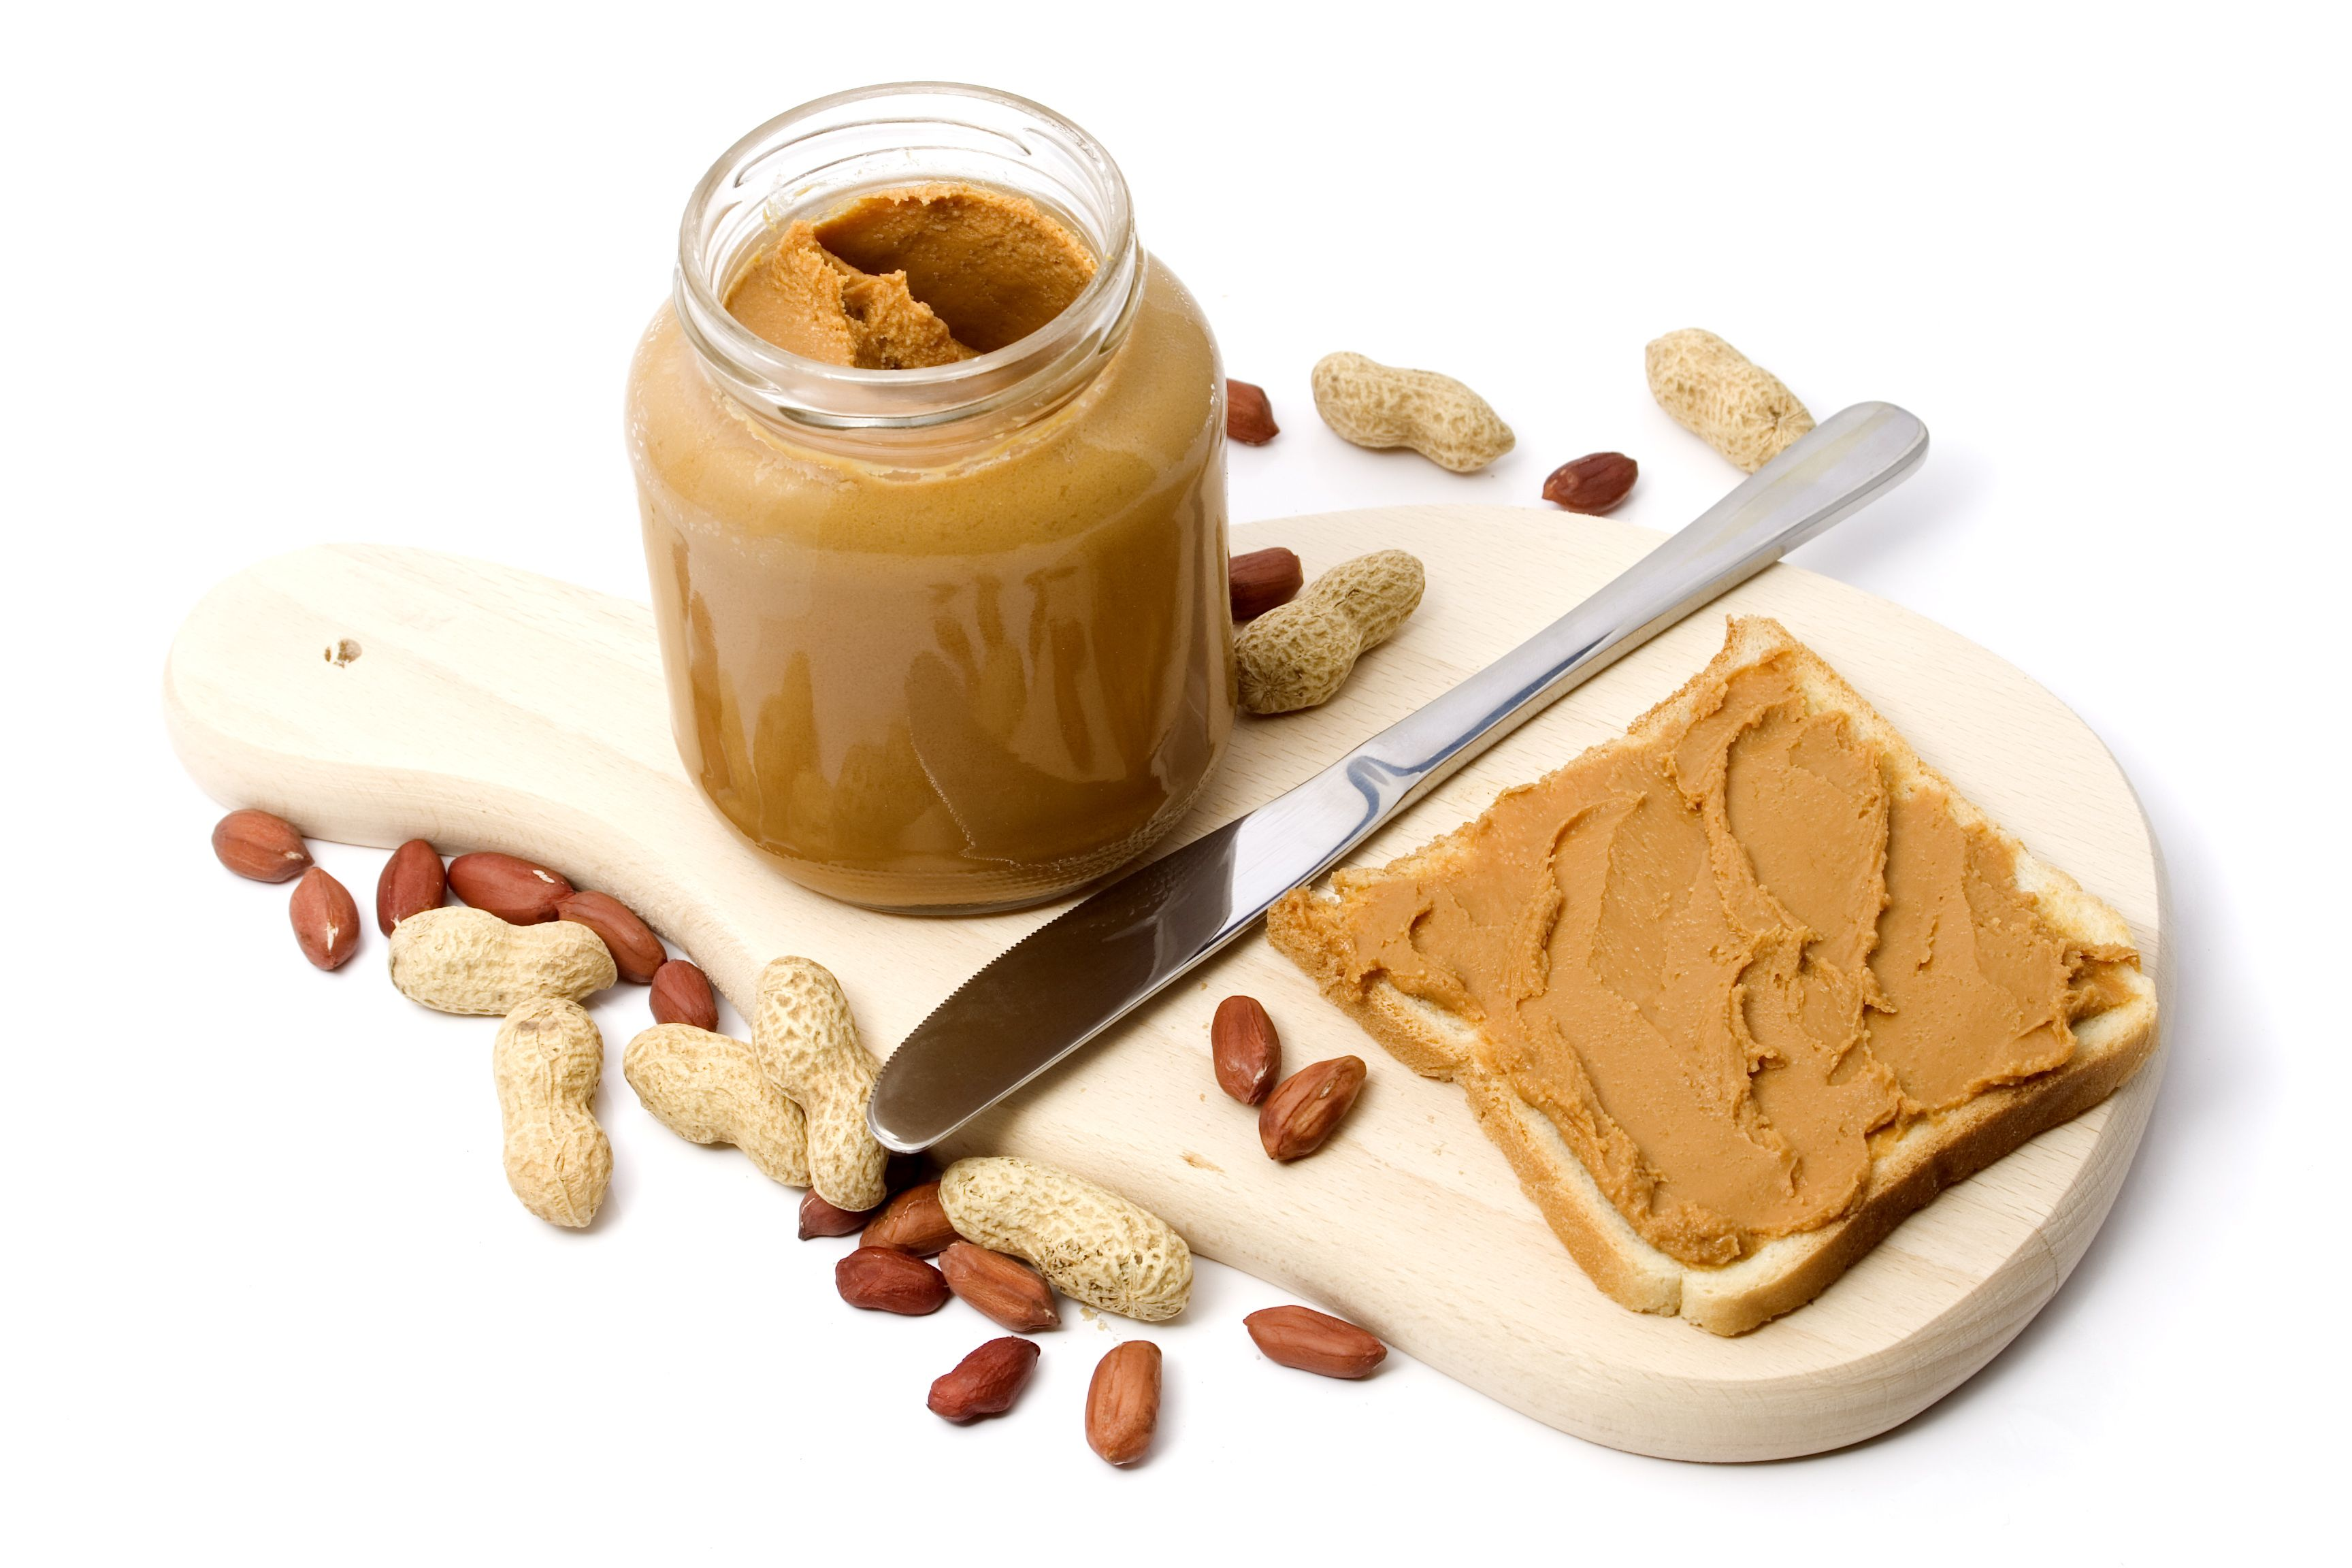 Can Dogs With Food Allergies Eat Peanut Butter